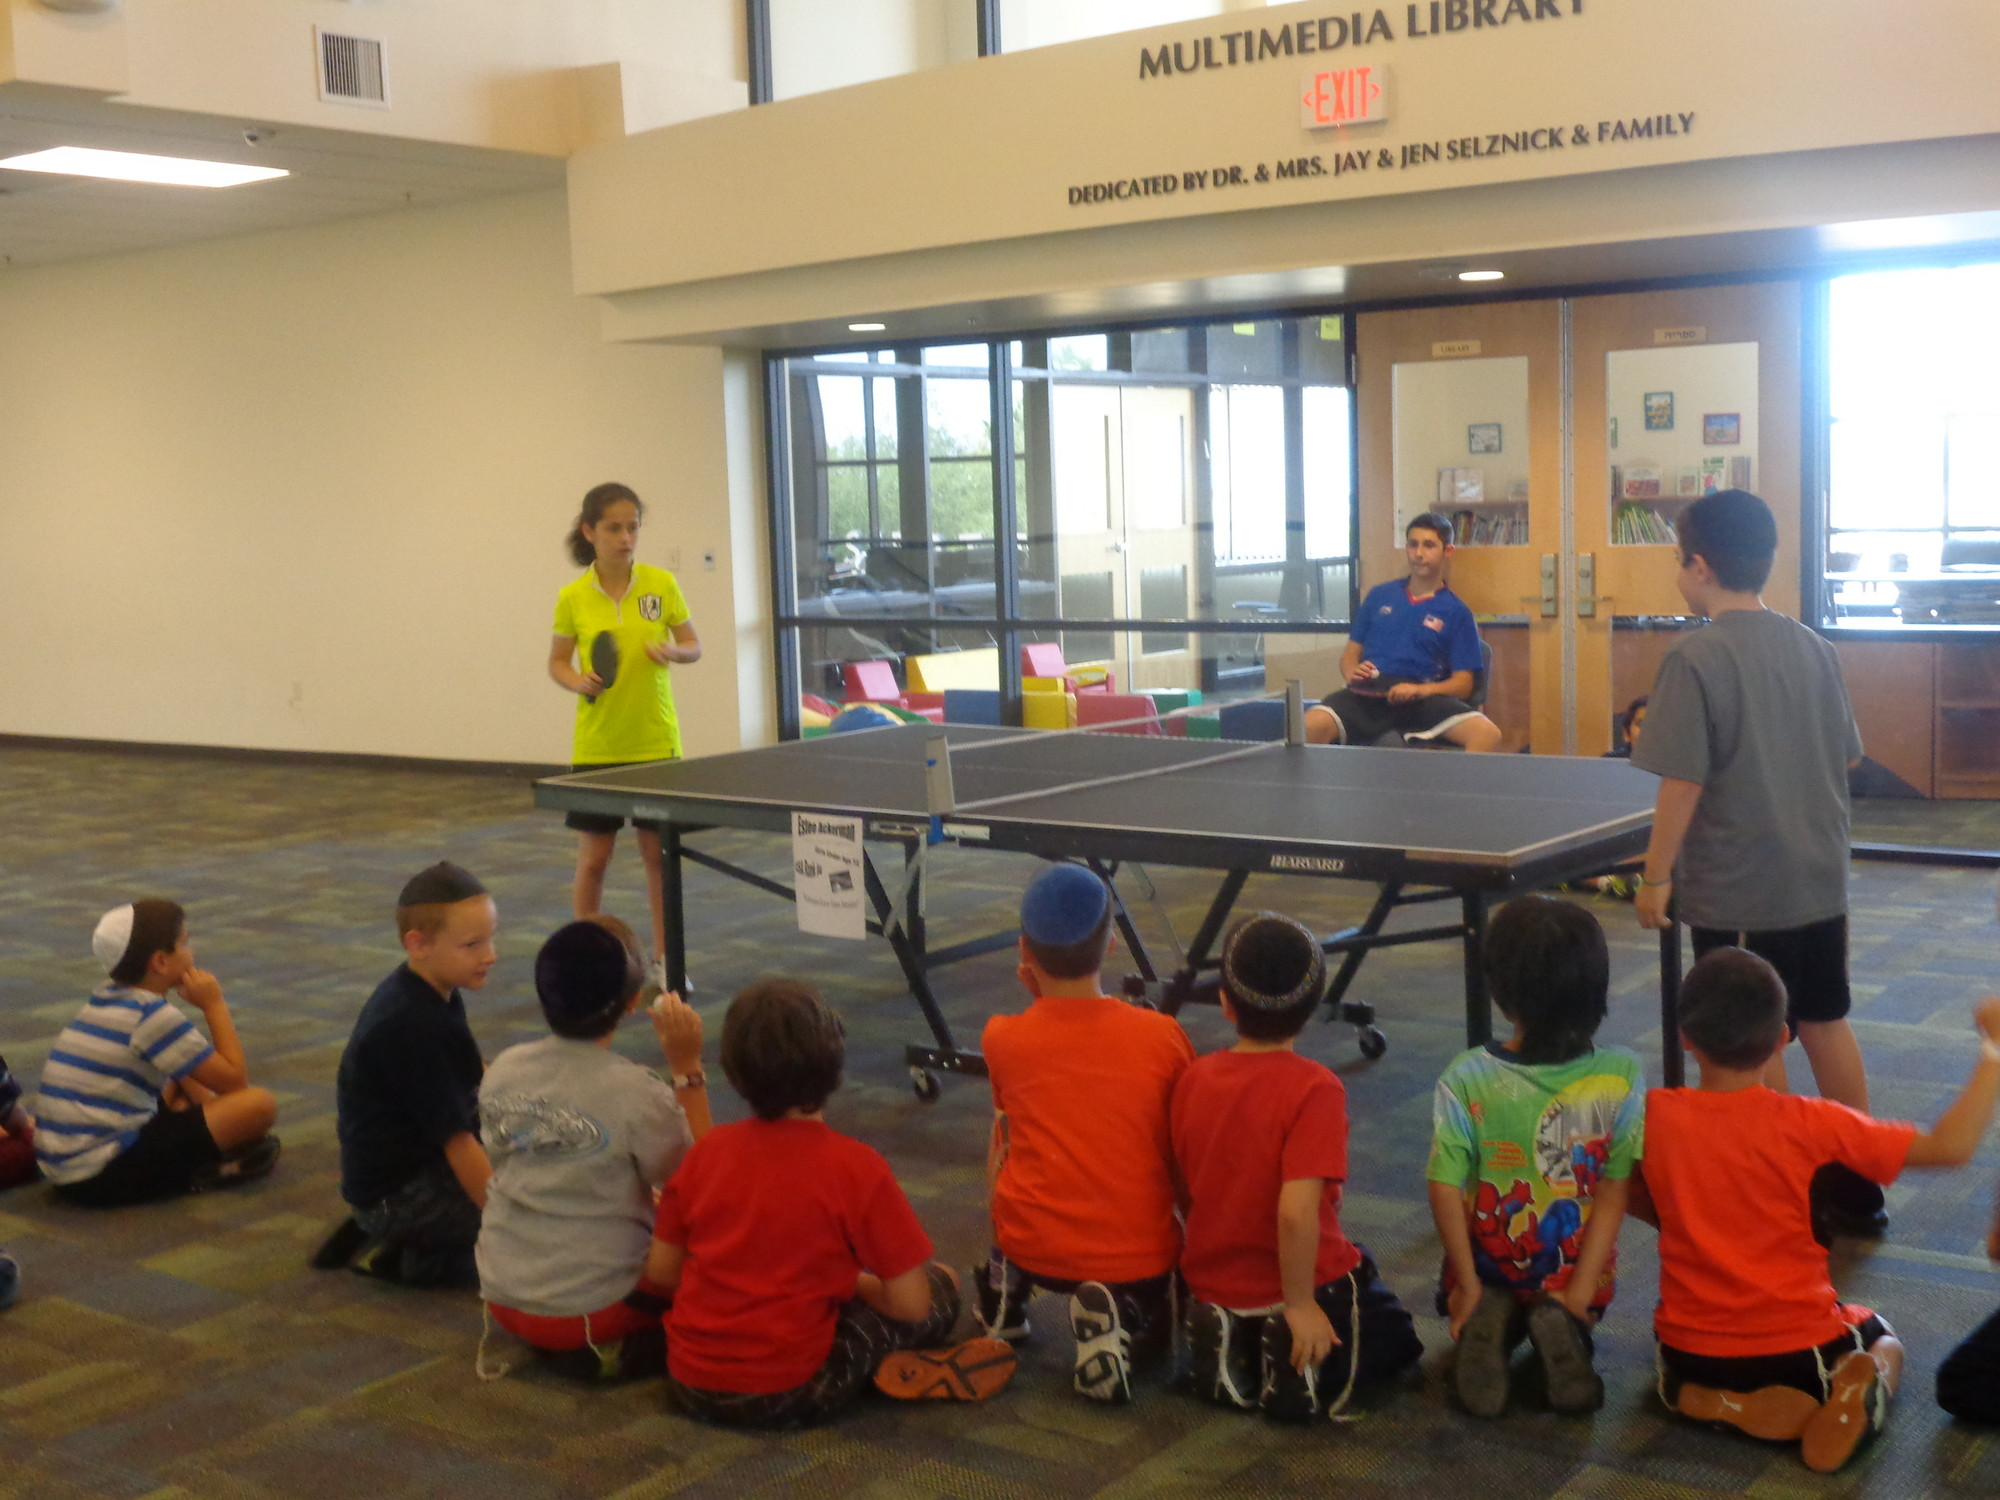 Estee Ackerman played with some of the campers in a table tennis demonstration.